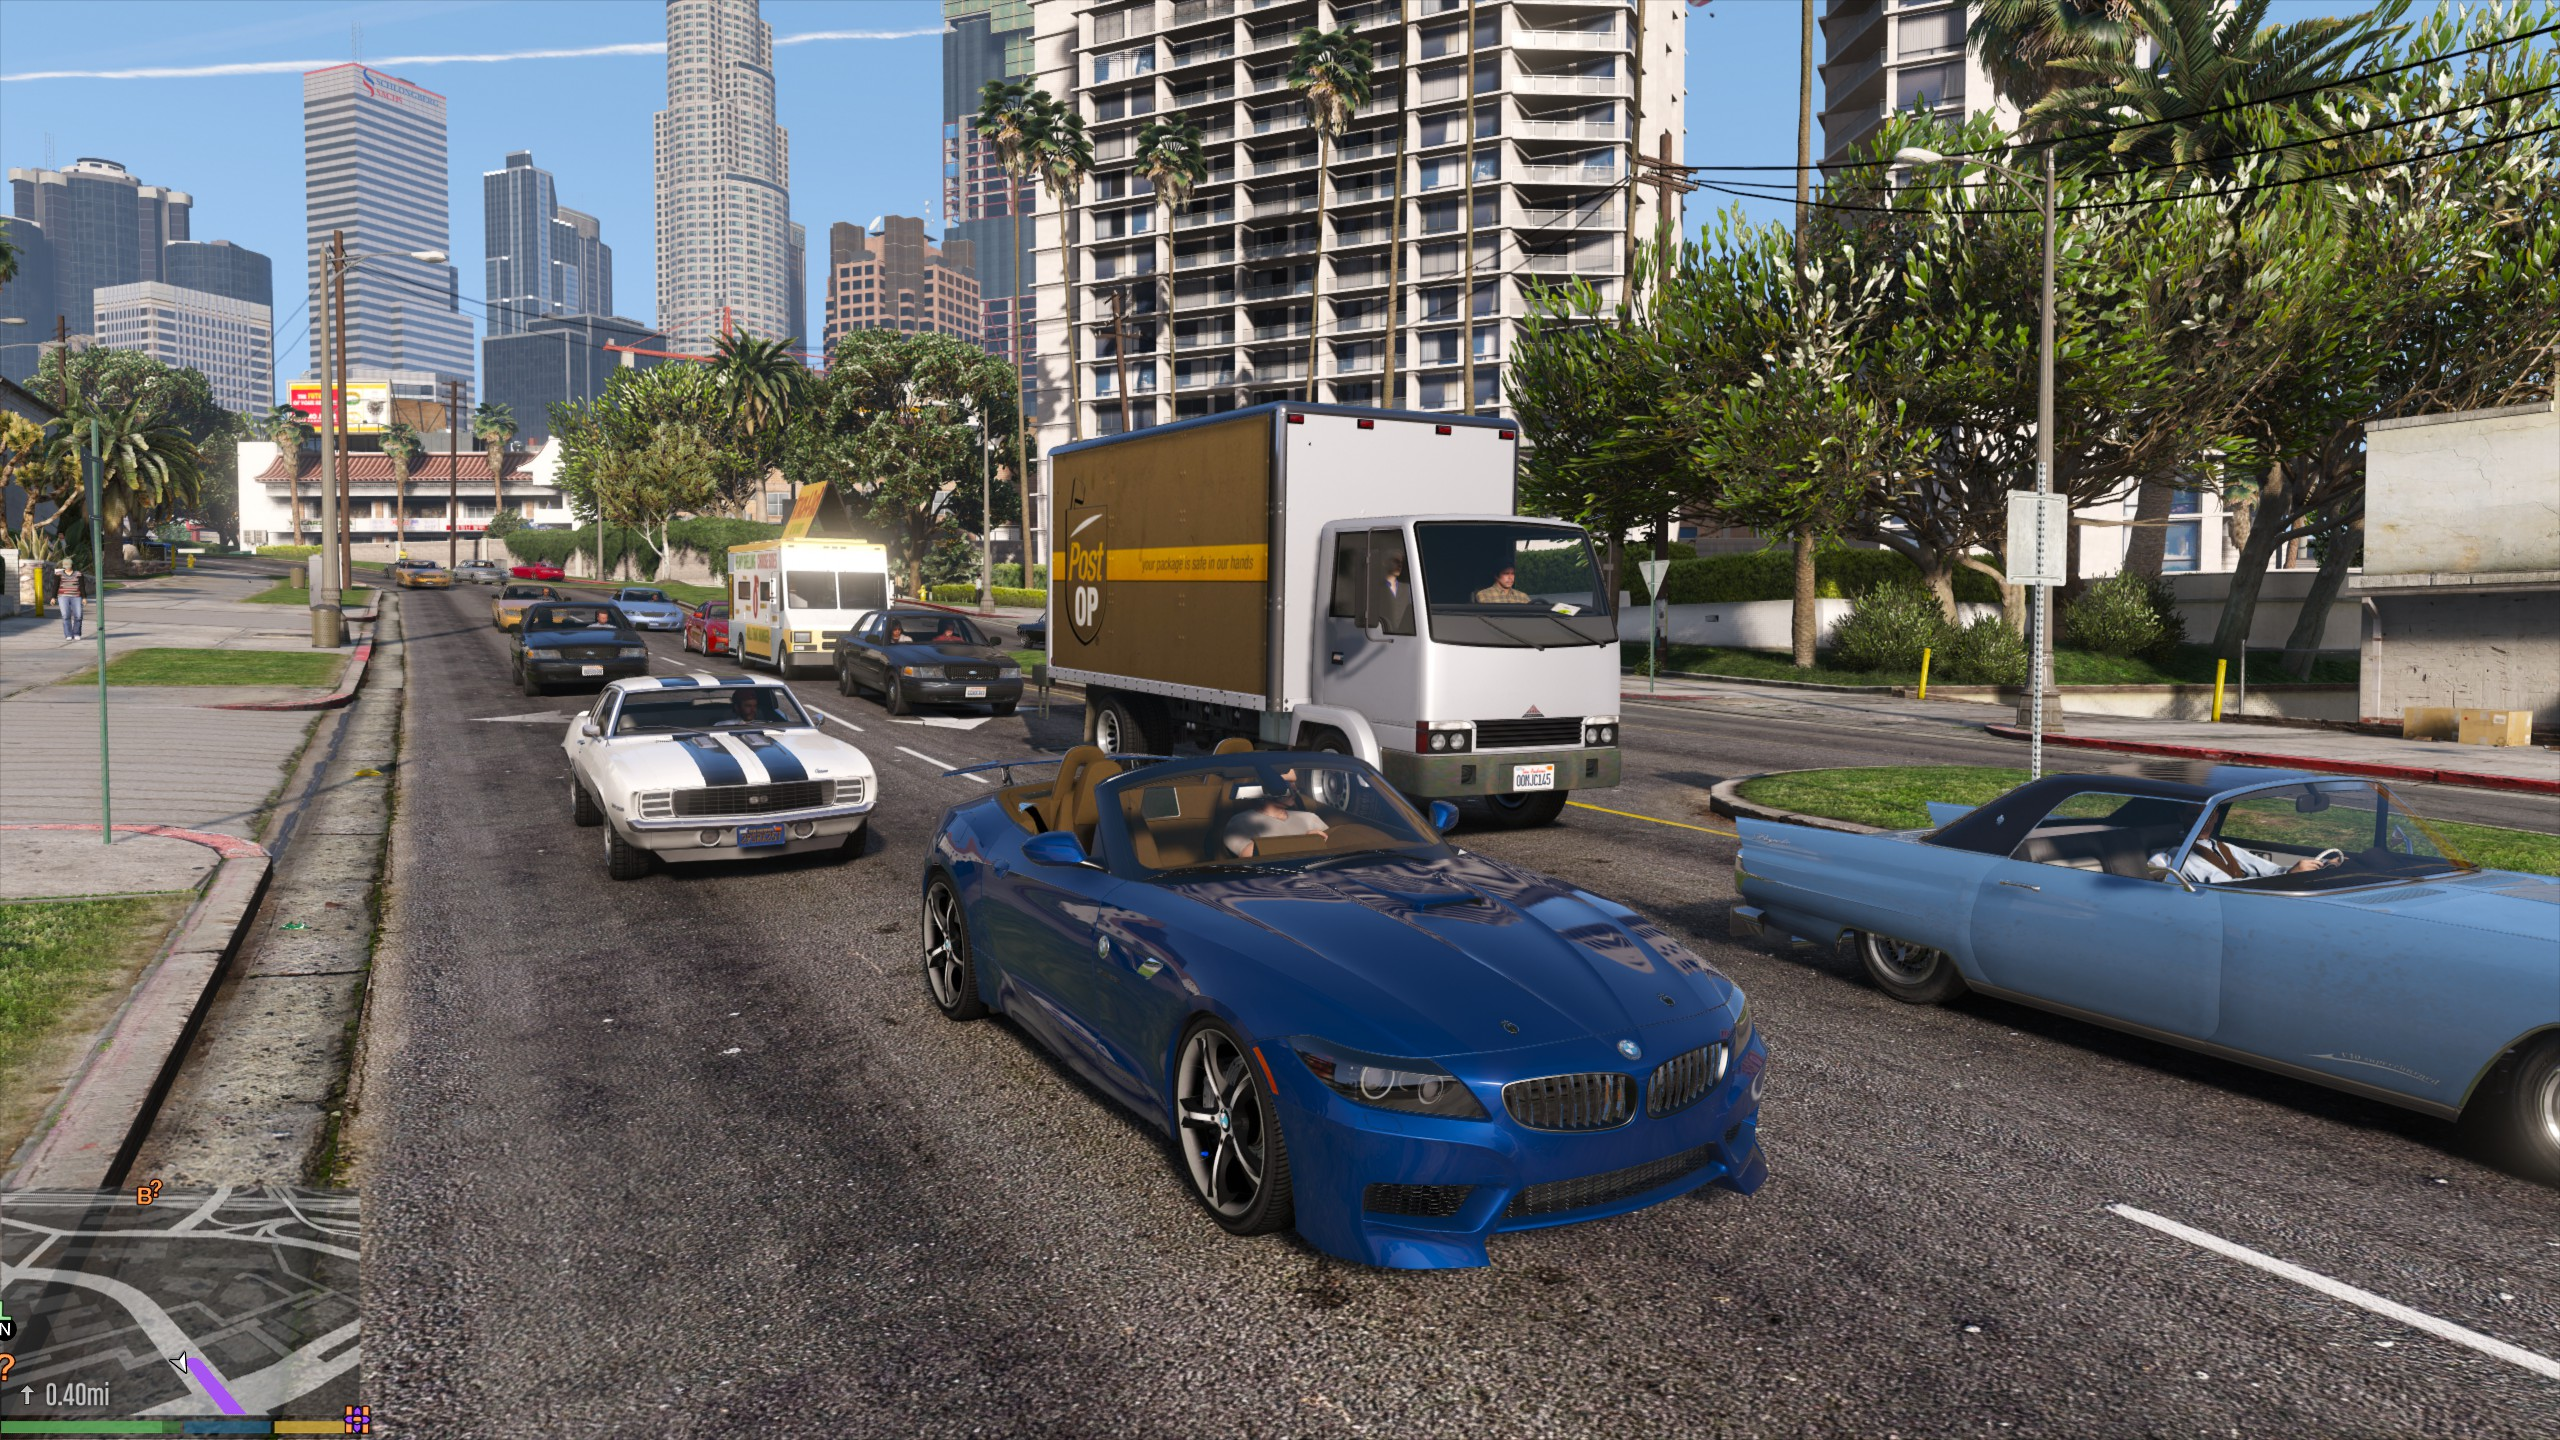 Steam Community Guide How To Mod GTAV Includes Graphics - Guy takes pictures showing just realistic grand theft auto v looks